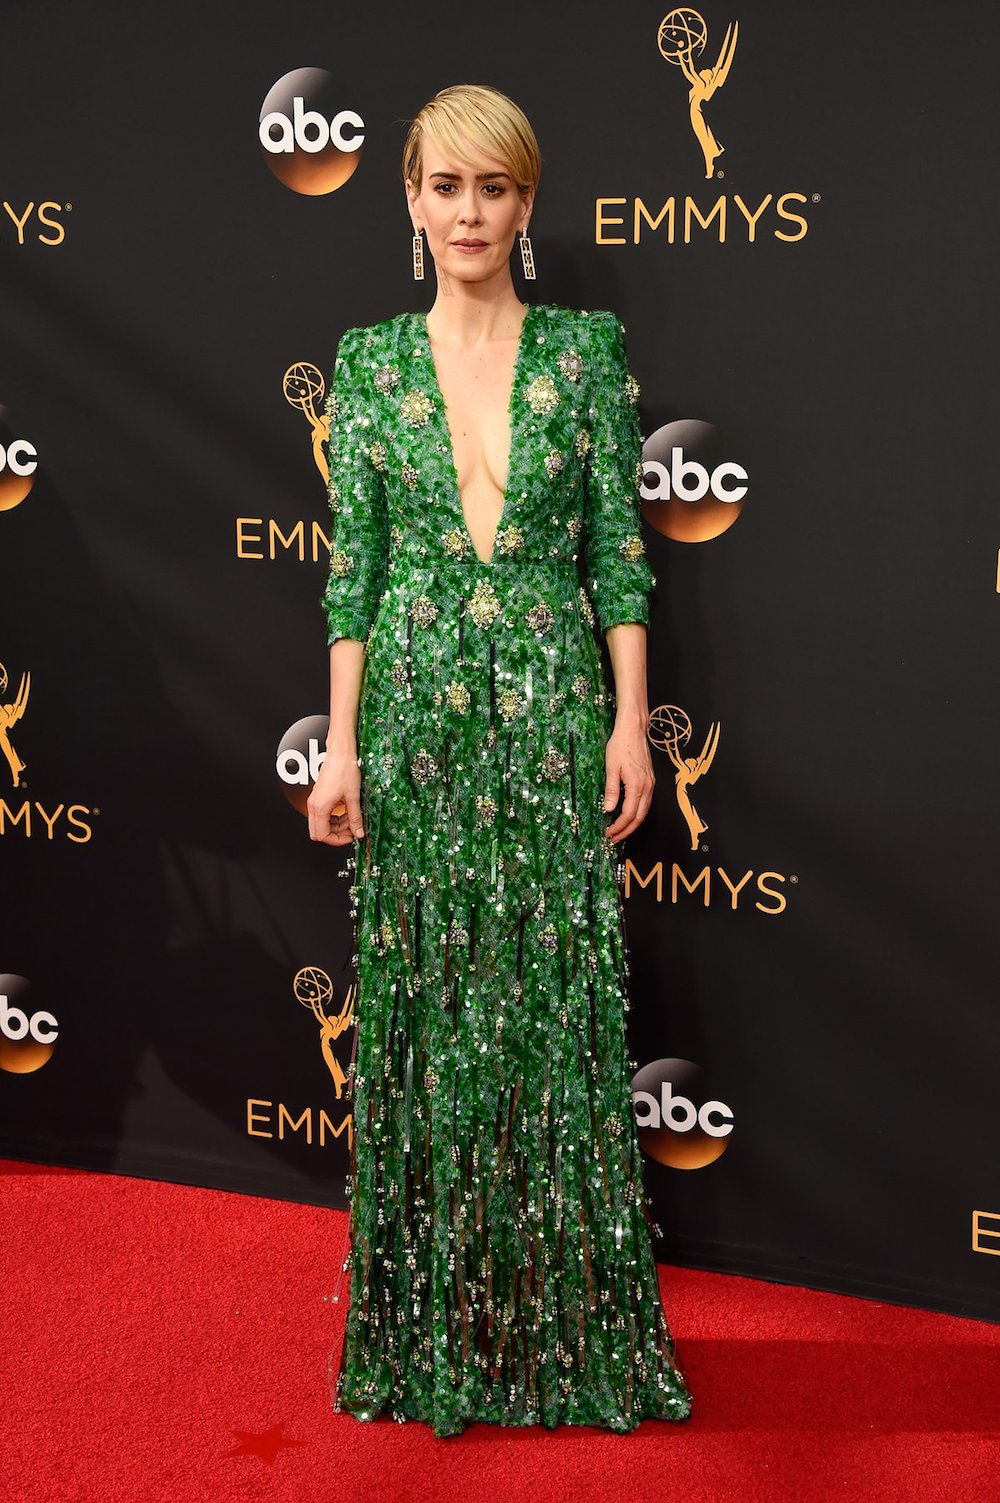 Sarah Paulson in Prada at the 2016 Emmy Awards. Image courtesy of Getty.